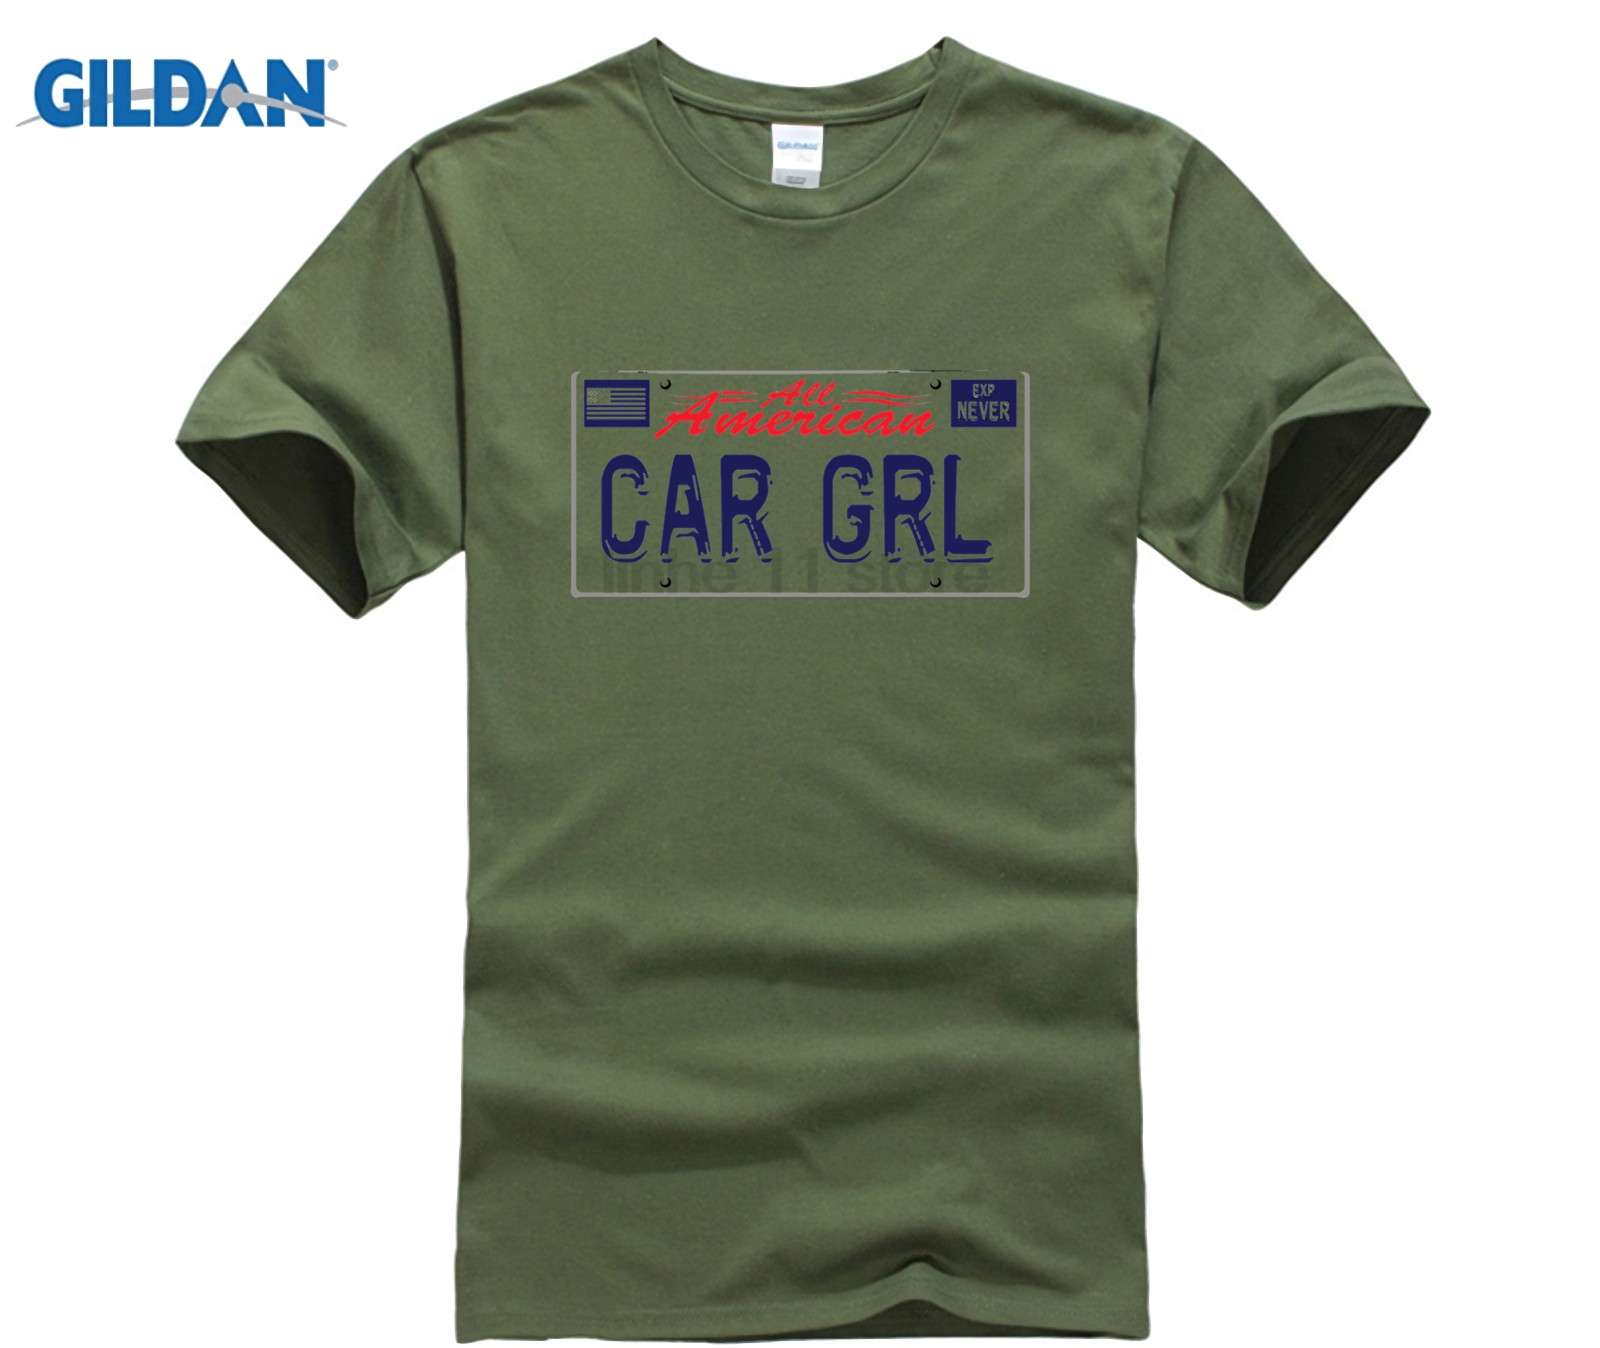 Hot Sale GILDAN CAR GRL T-Shirt dress T-shirt - Jsboutique c8949a457ff